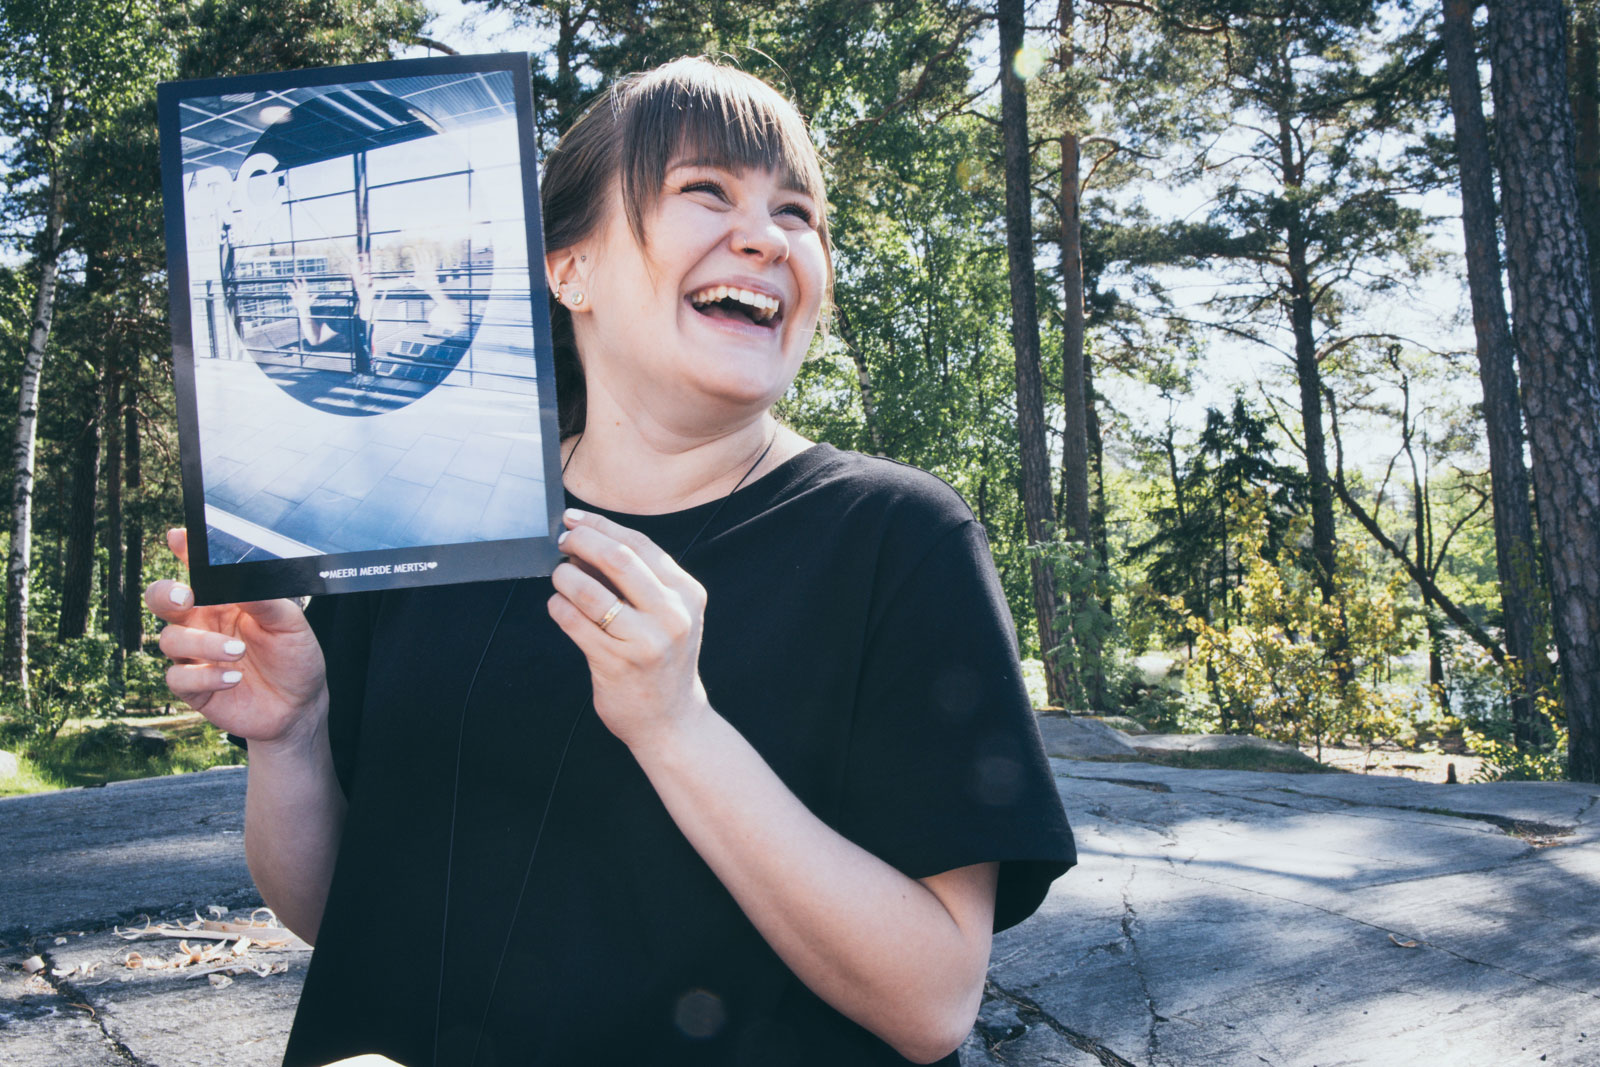 Meeri Lehto smiling with a printed photo of herself.